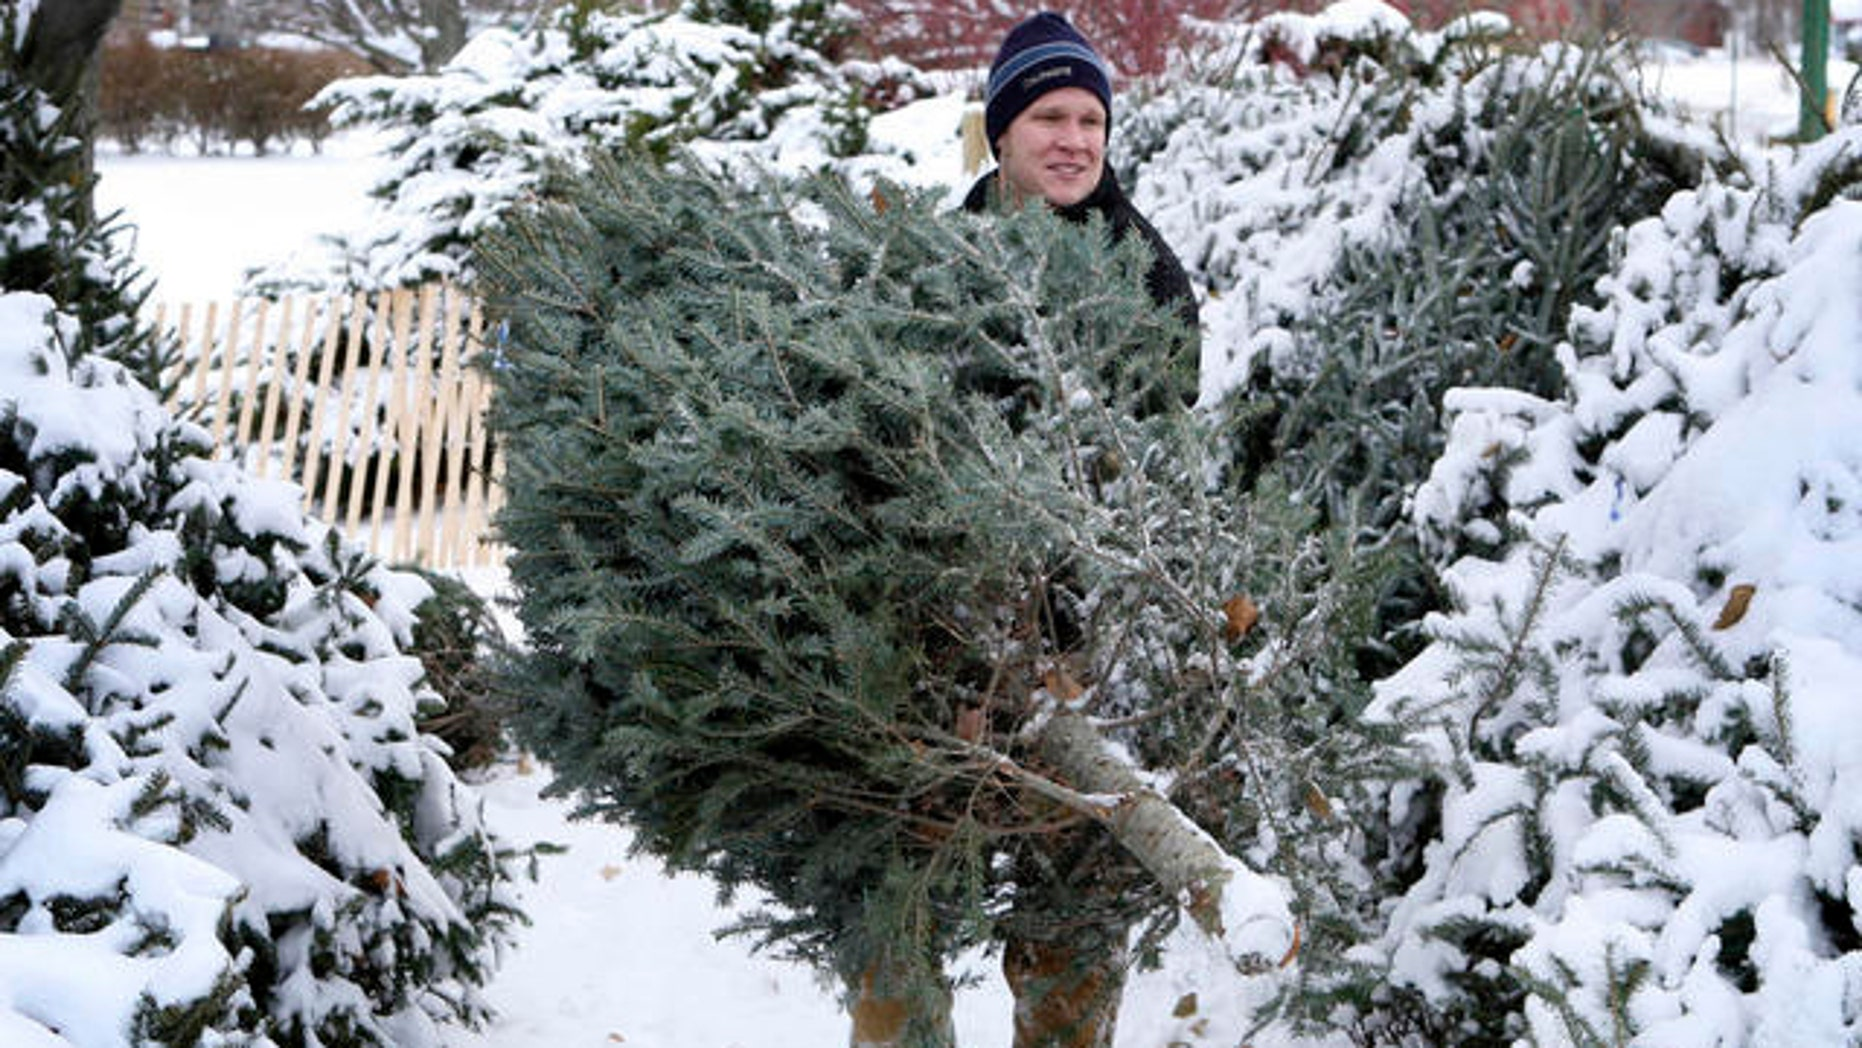 Real Christmas trees, like this one being carried by a man in Maine, are reportedly banned from display this year at the Norton Glen housing complex in Norton, Mass.